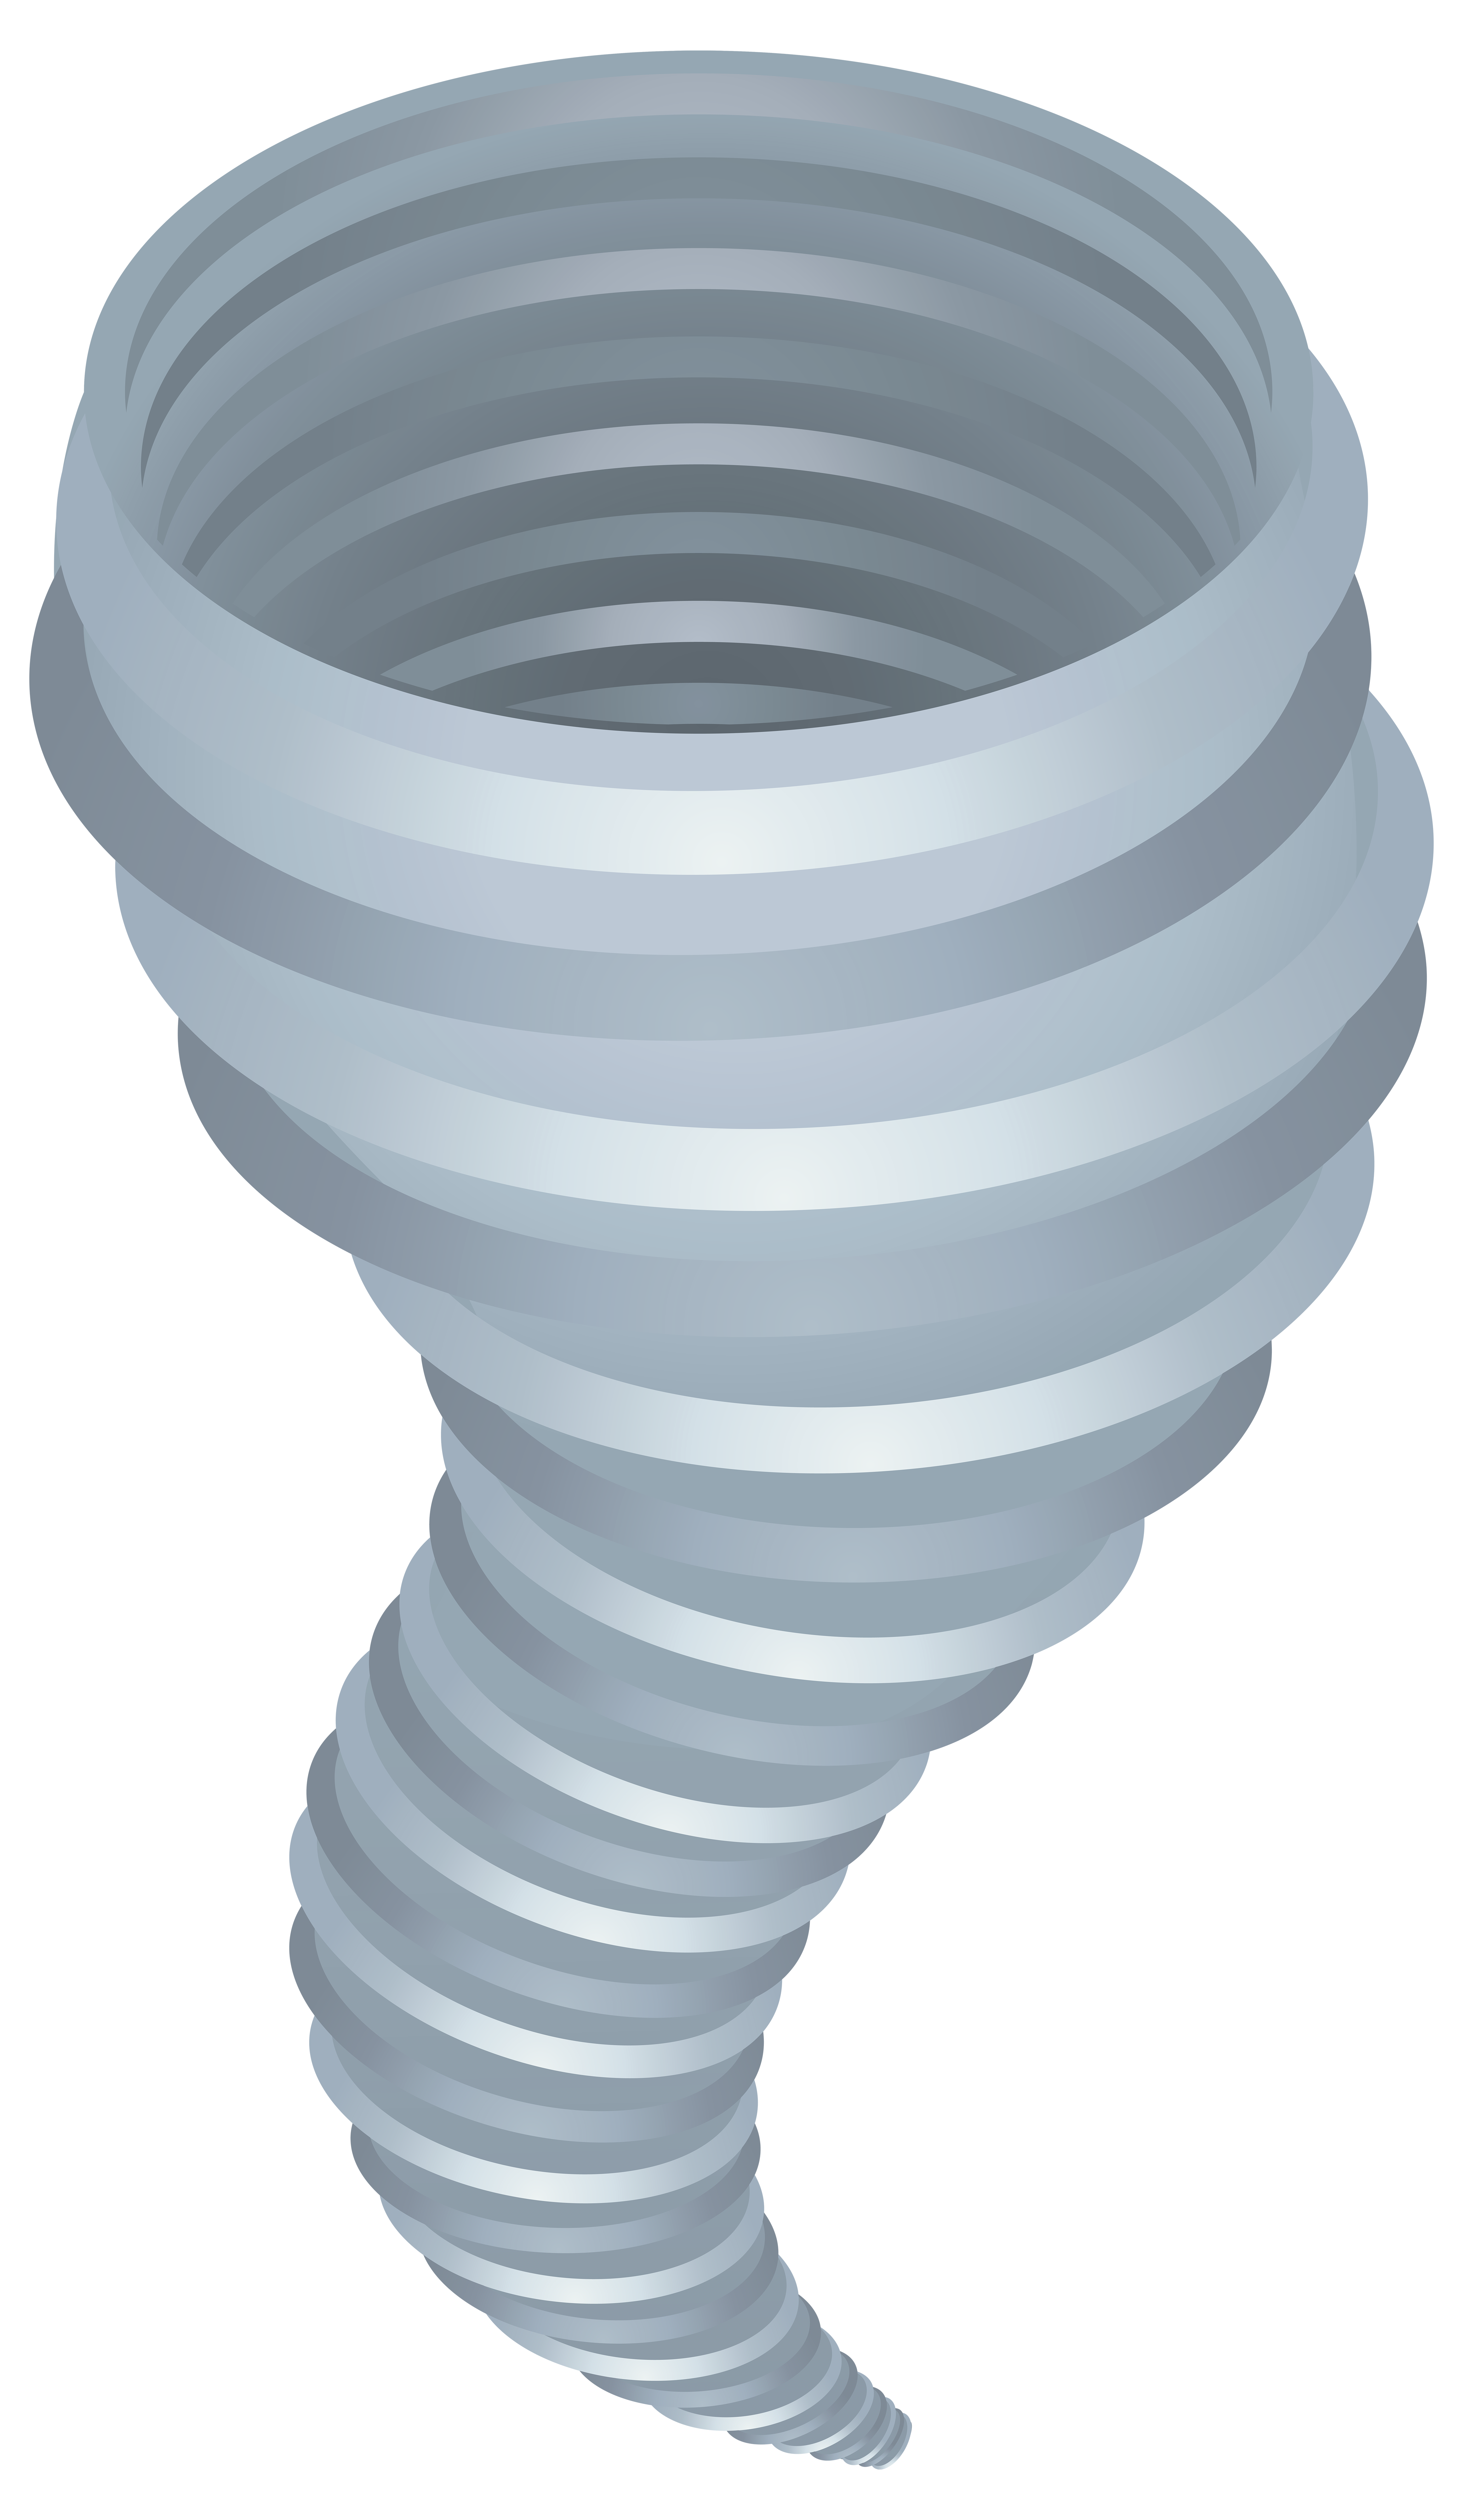 Weather icon png clip. Hurricane clipart hurricane eye